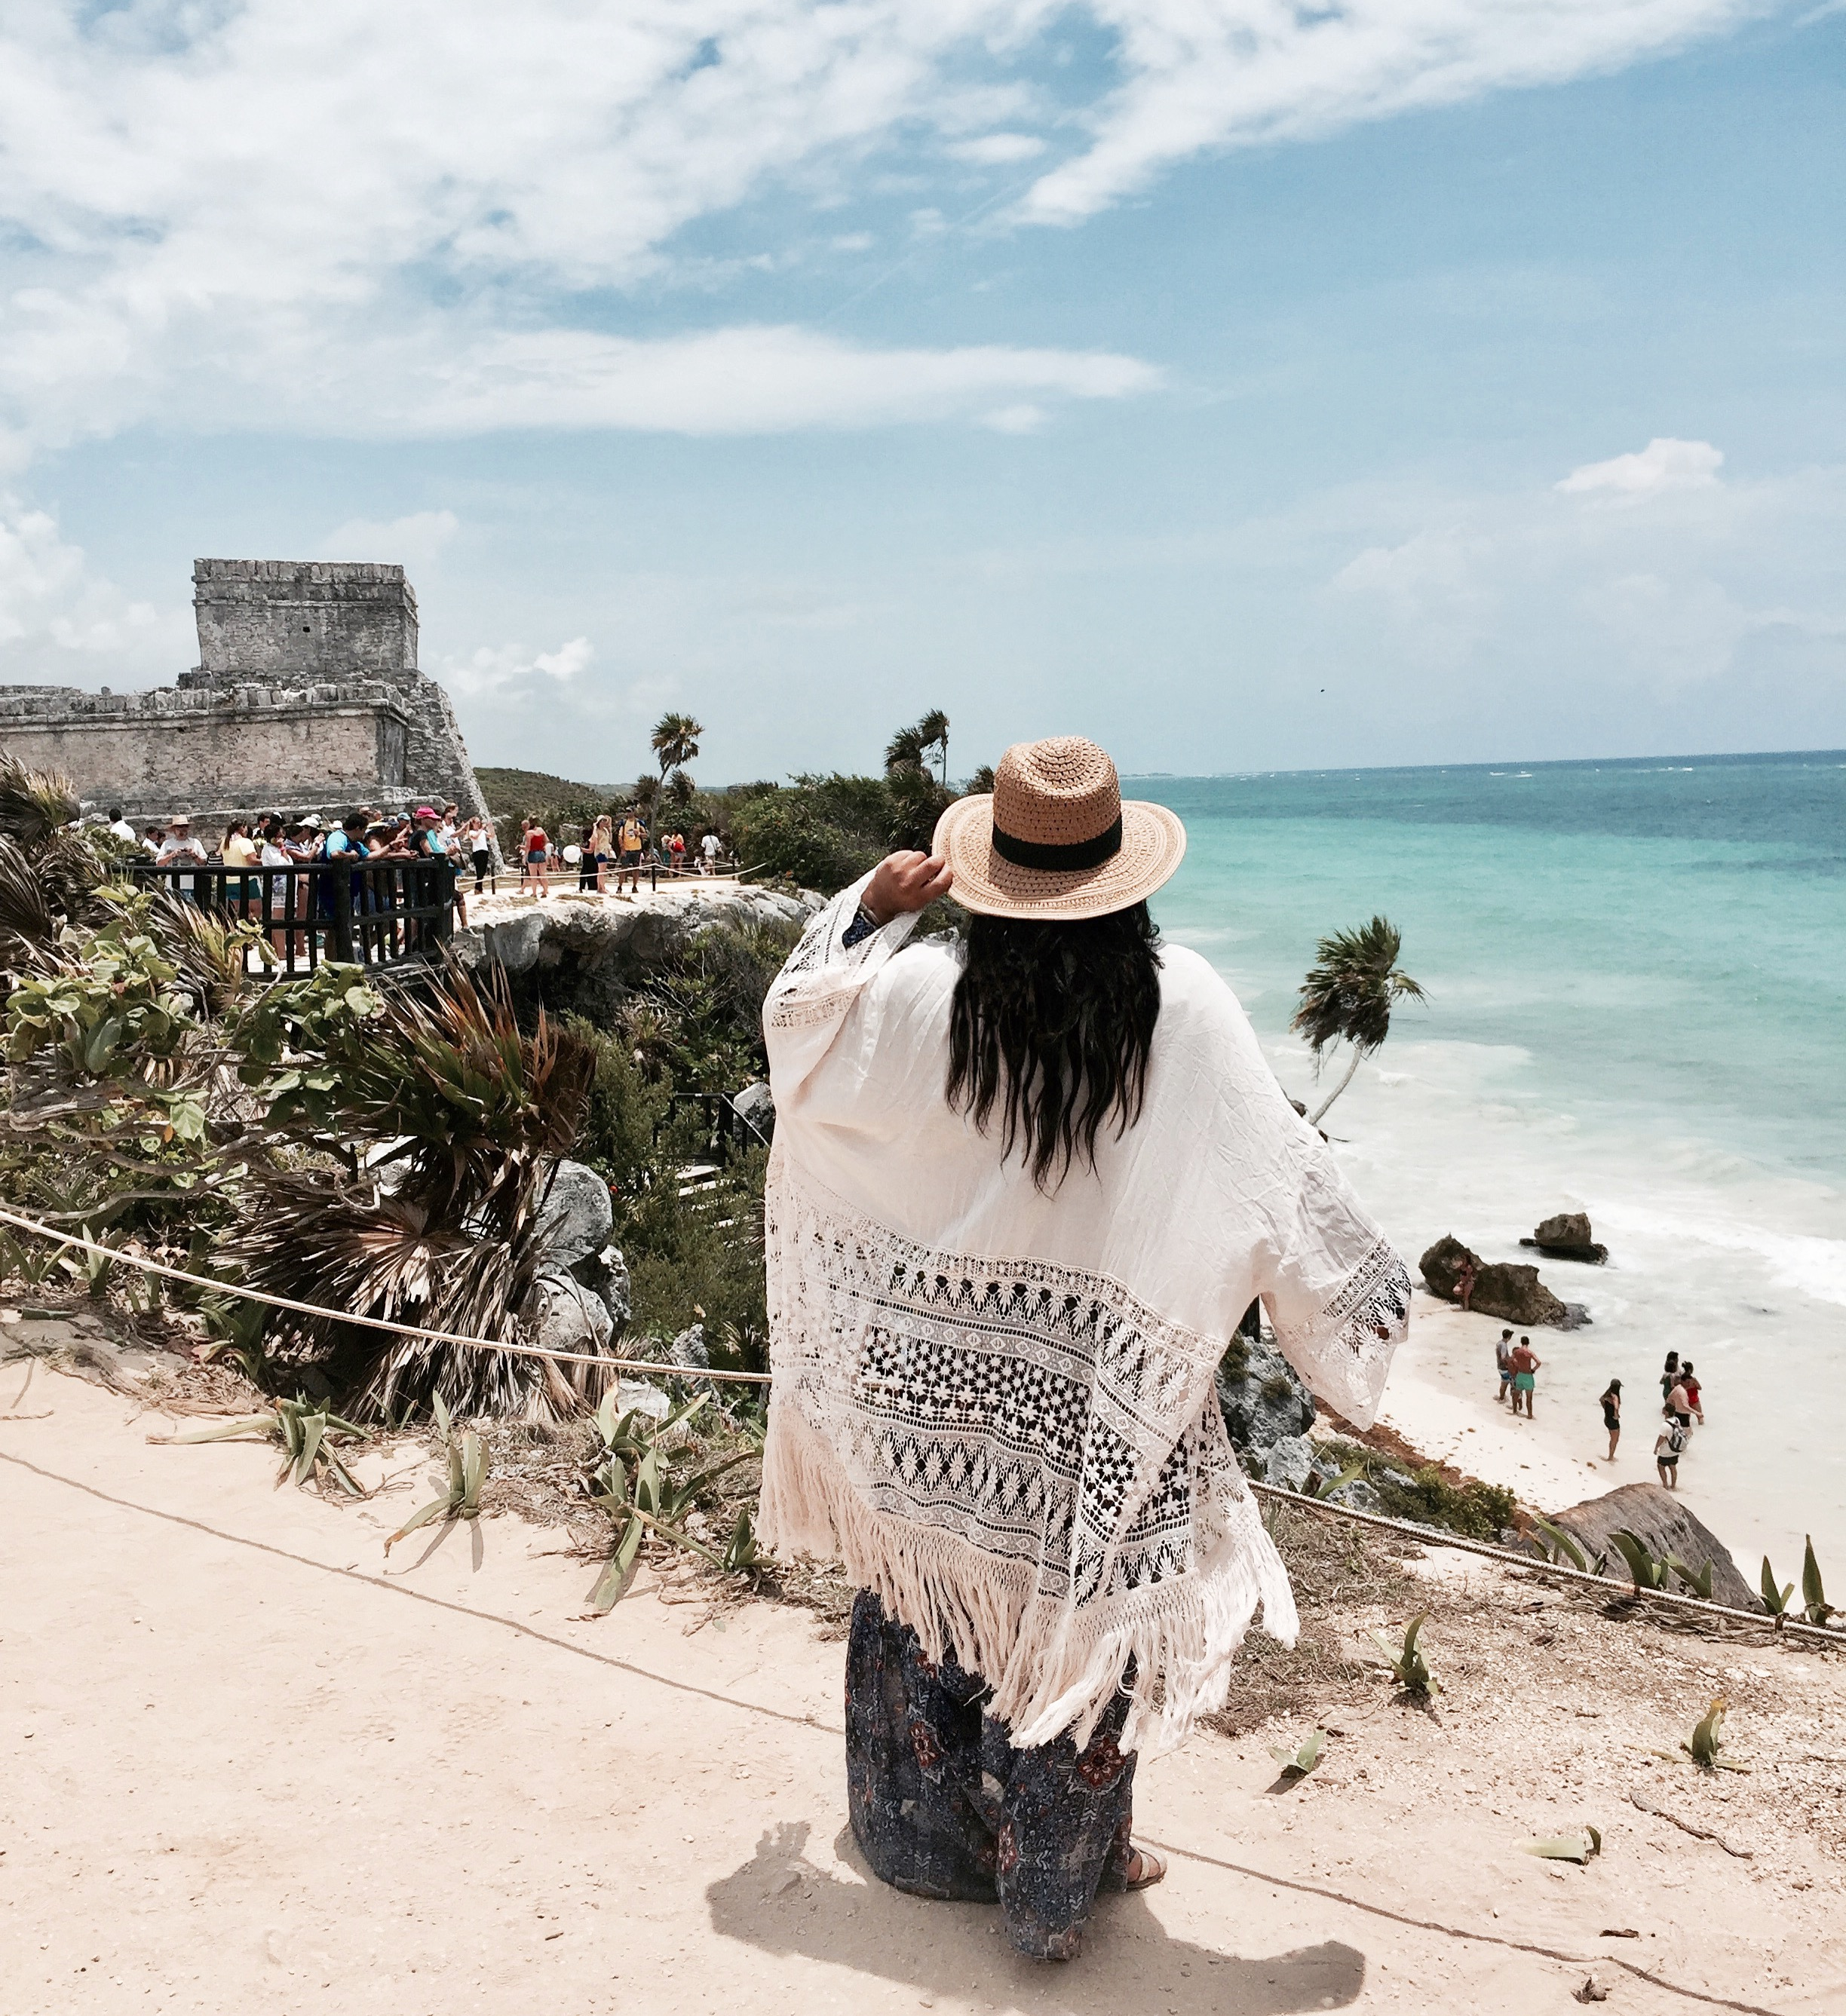 MAYAN RUINS OF TULUM  - Ancient historical architecture right off the coast.{Tip: We got a rental car for the few days we were in Mexico, so we can get around at our own time rather than go with a tour guide. We arrived mid-day, however, get there early, before all the large groups of tourists come in, we wish we did!And, also check out the cute little town to drink some fresh coconut water after the long hot walk to the ruins & some fun souvenir shopping}